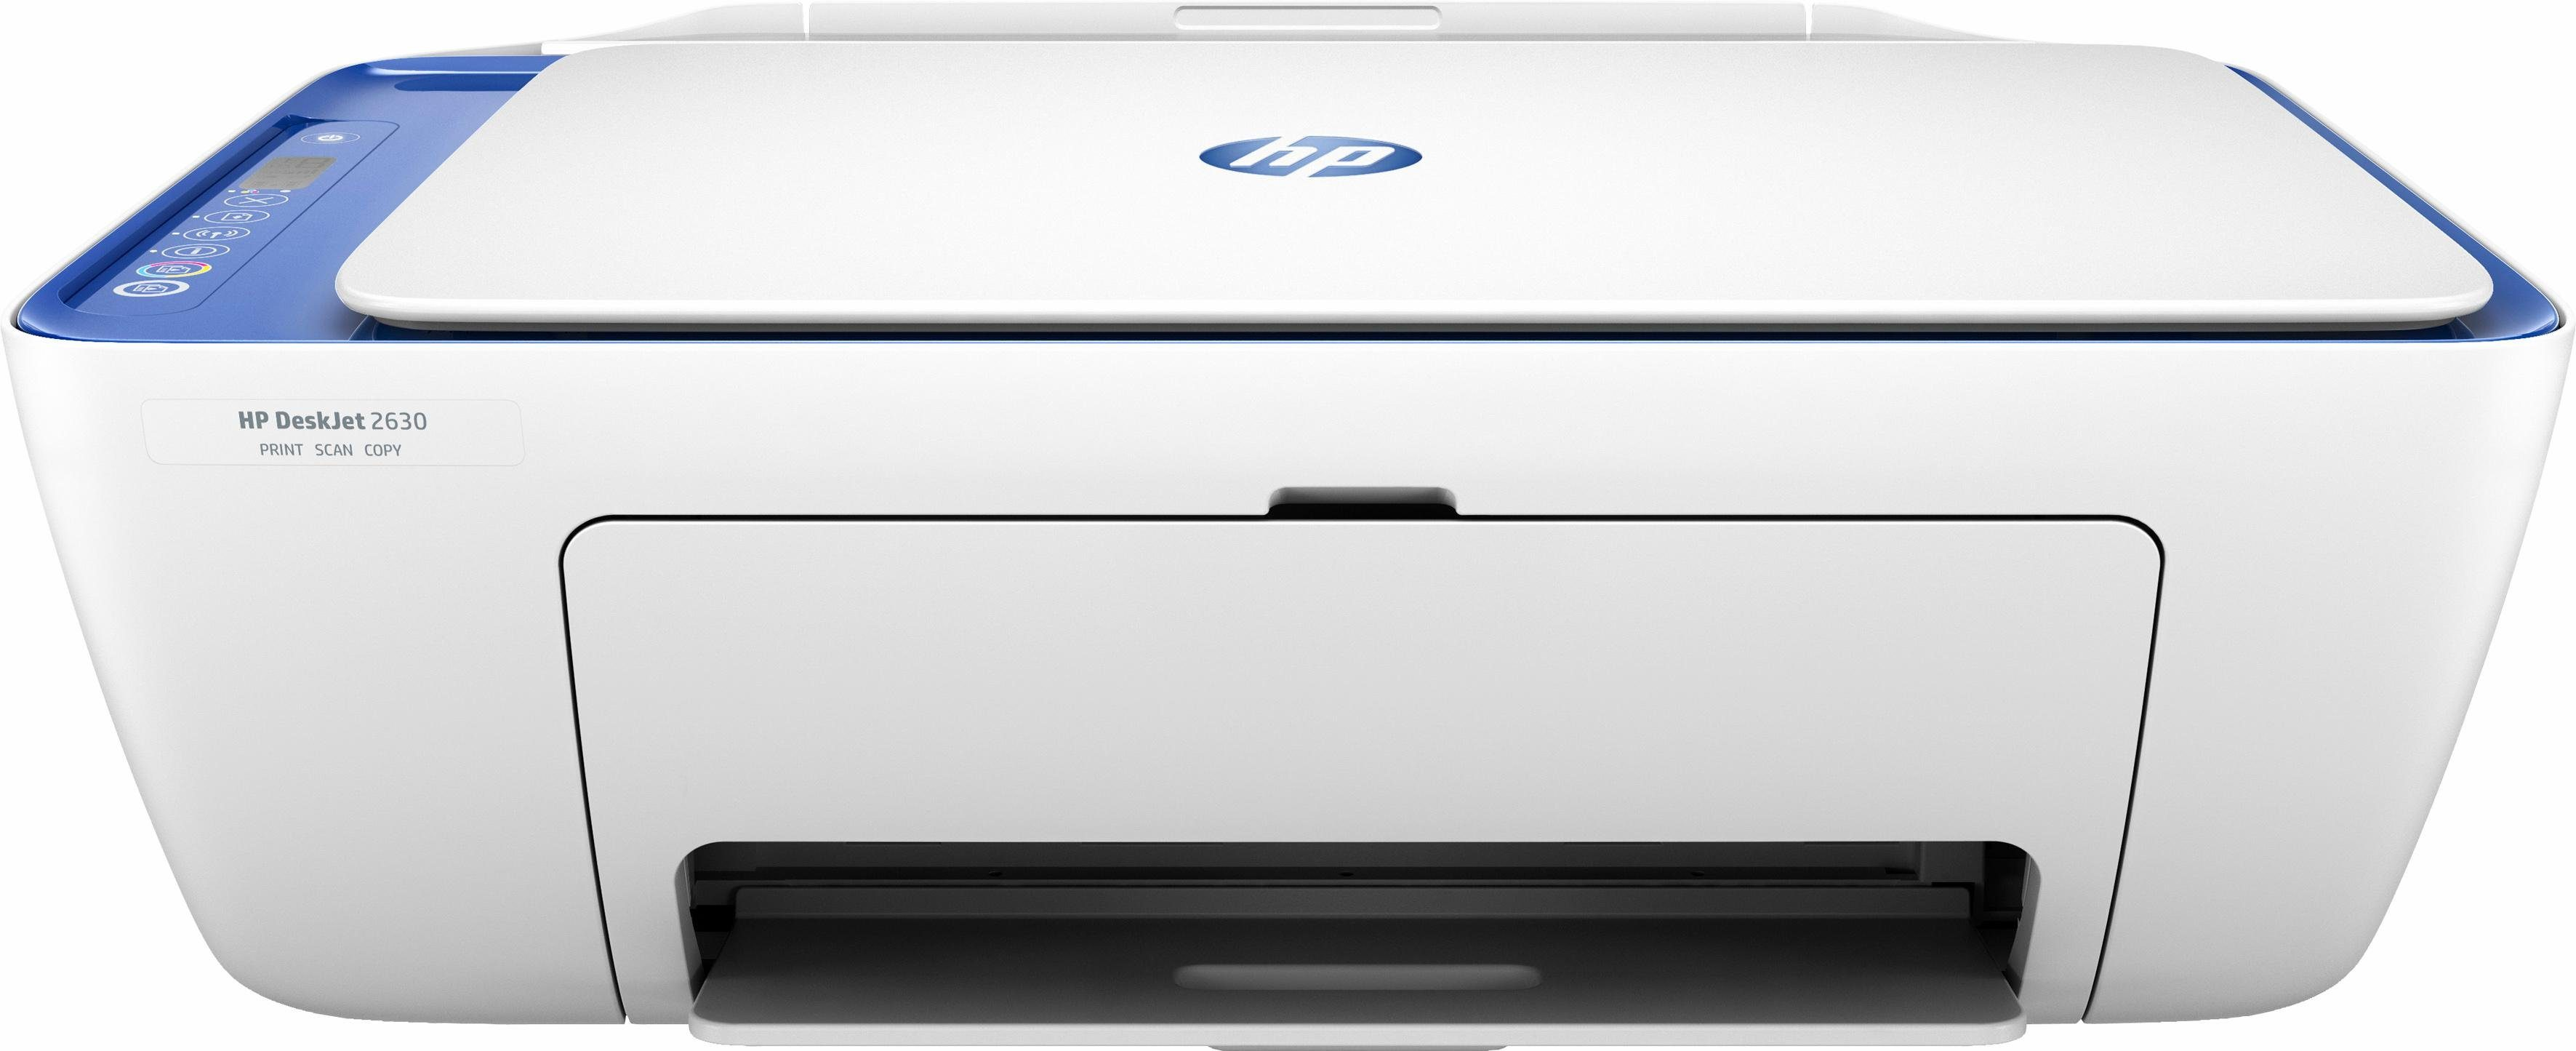 HP DeskJet 2630 All-in-One-Drucker Multifunktionsdrucker